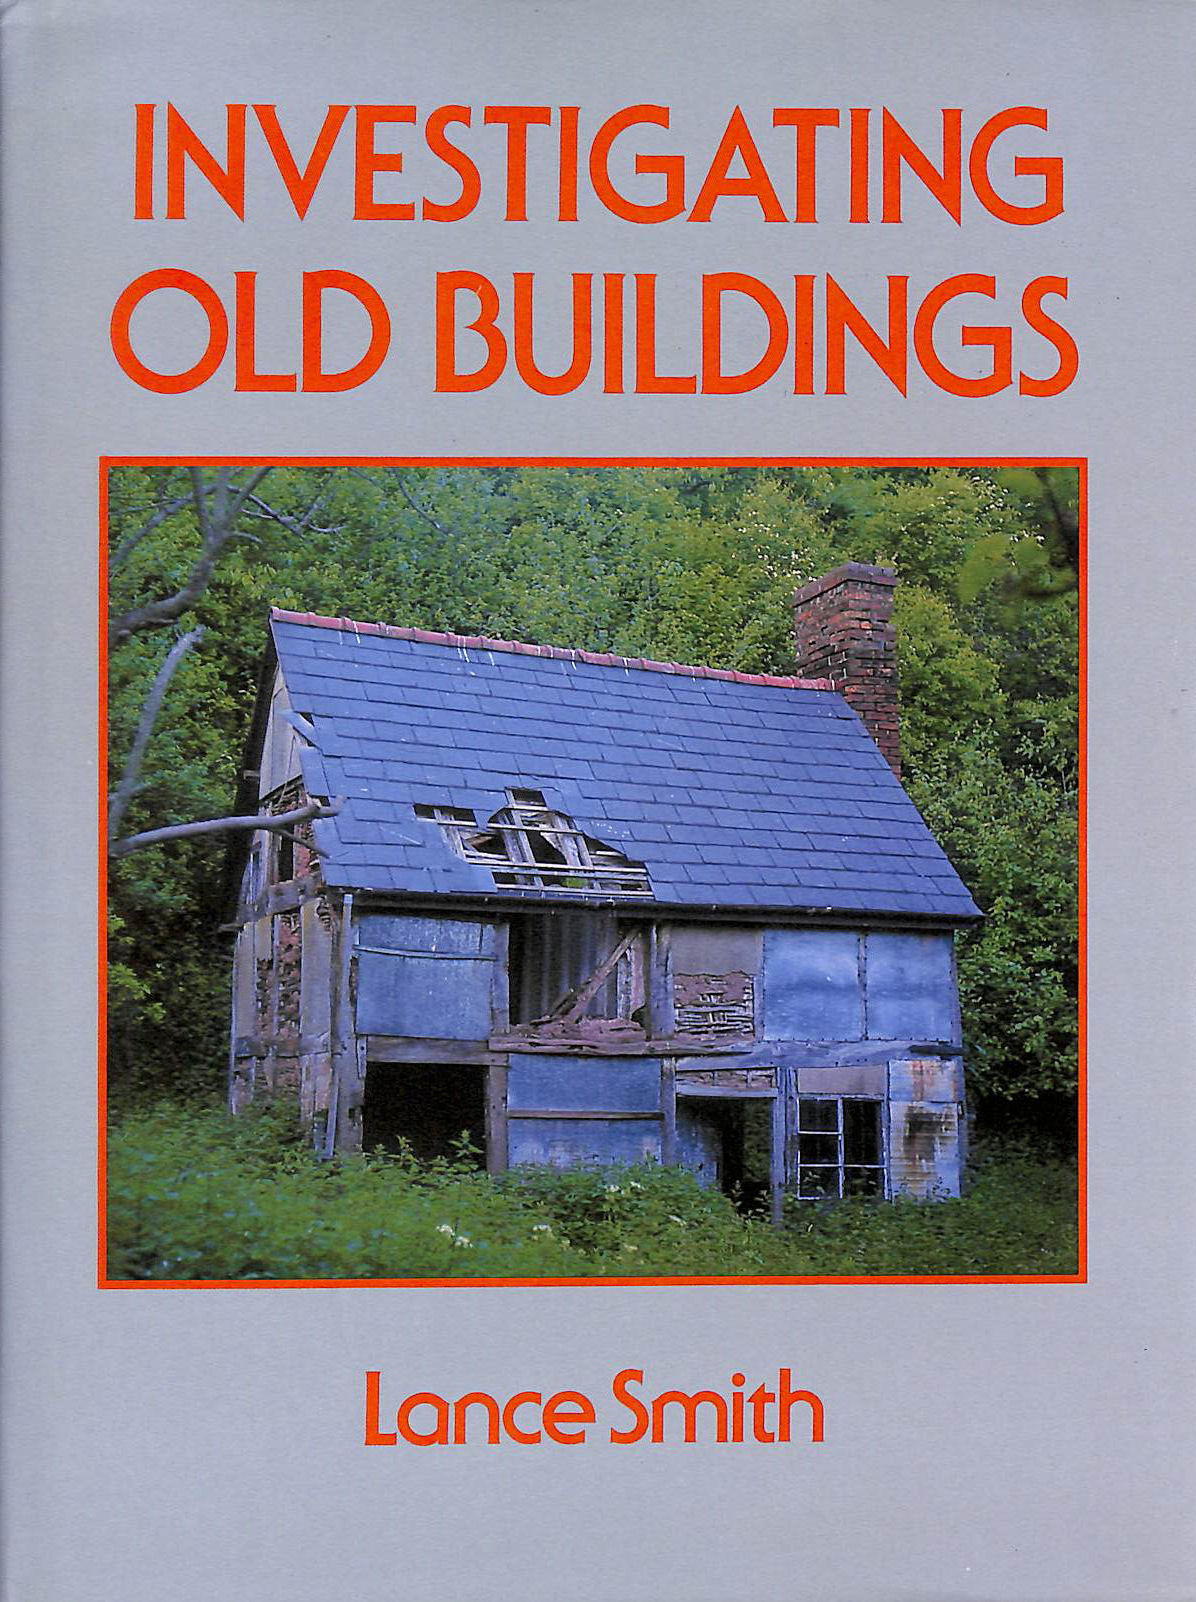 SMITH, LANCE - Investigating Old Buildings